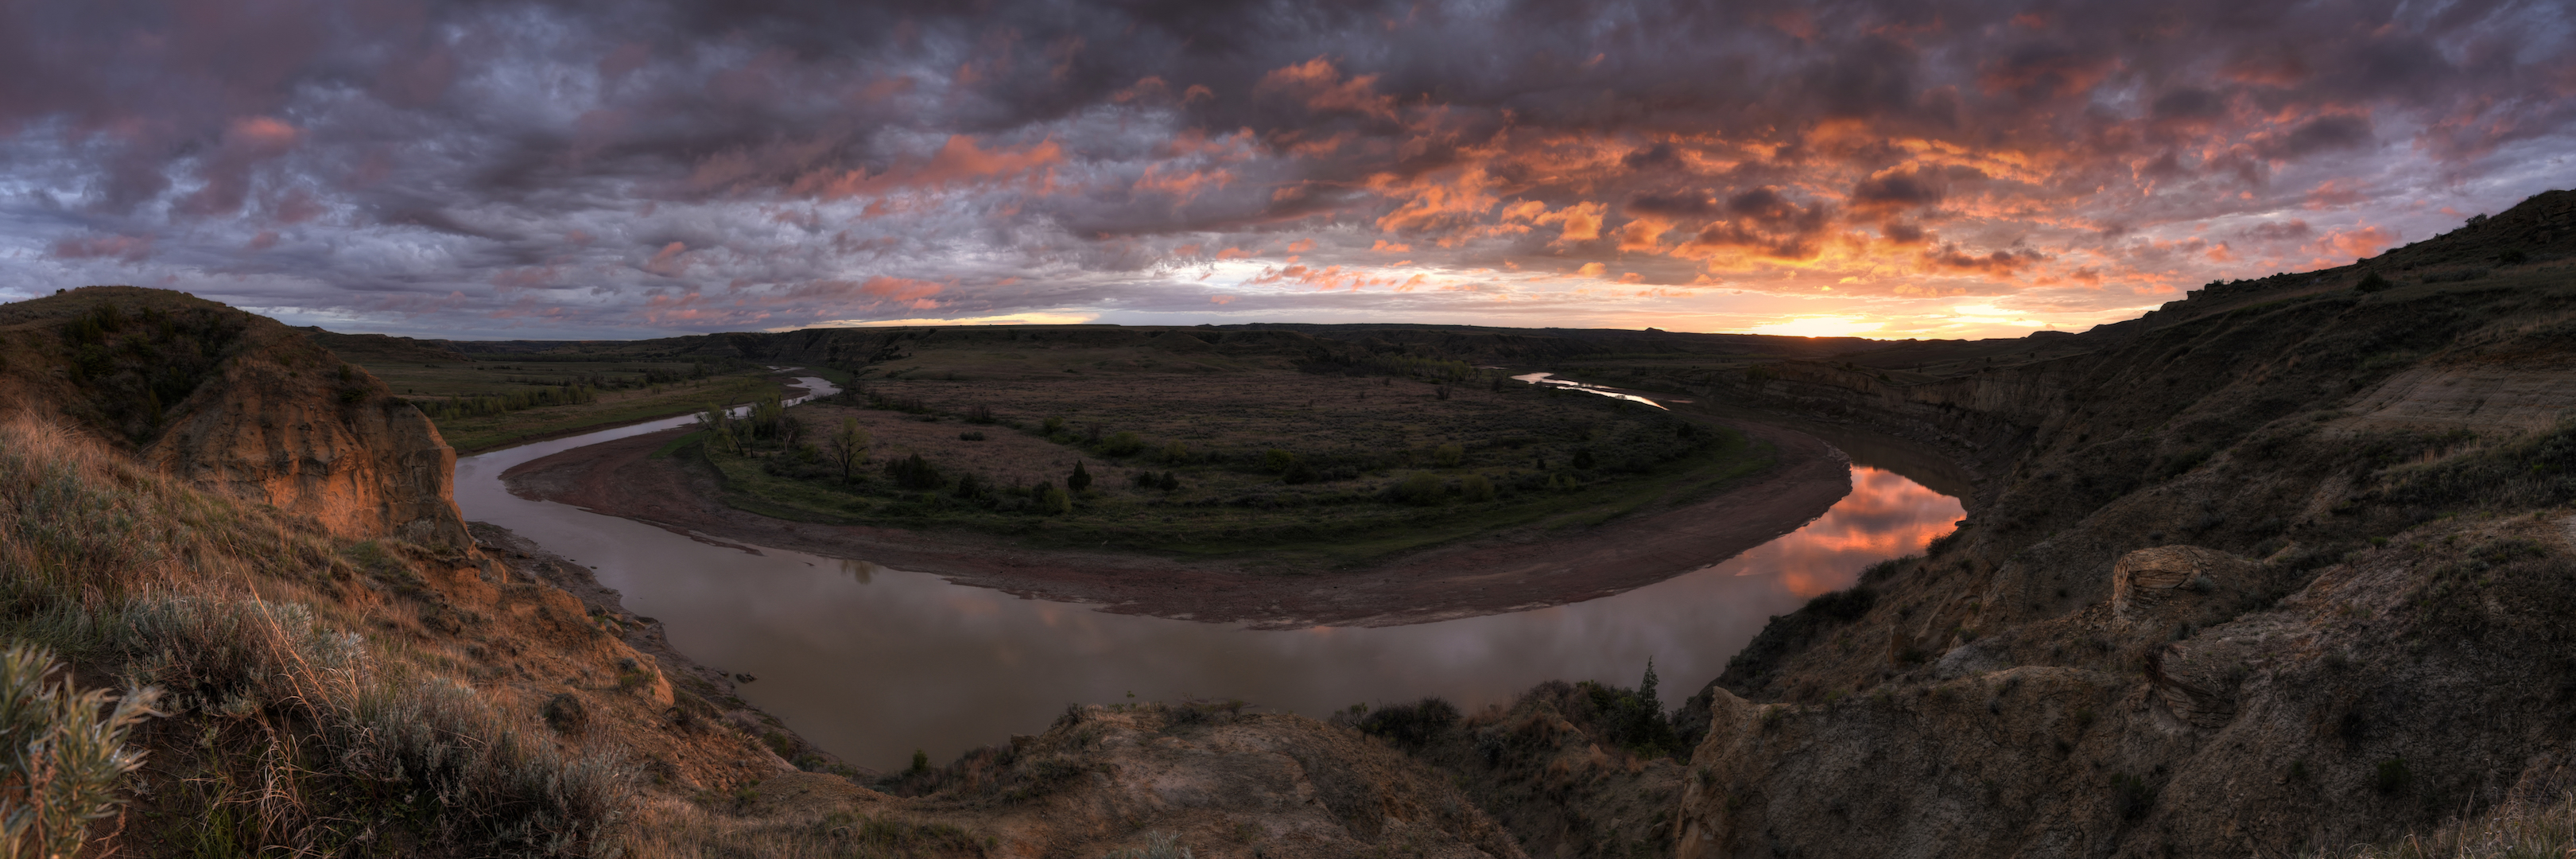 Little Missouri River, Theodore Roosevelt National Park